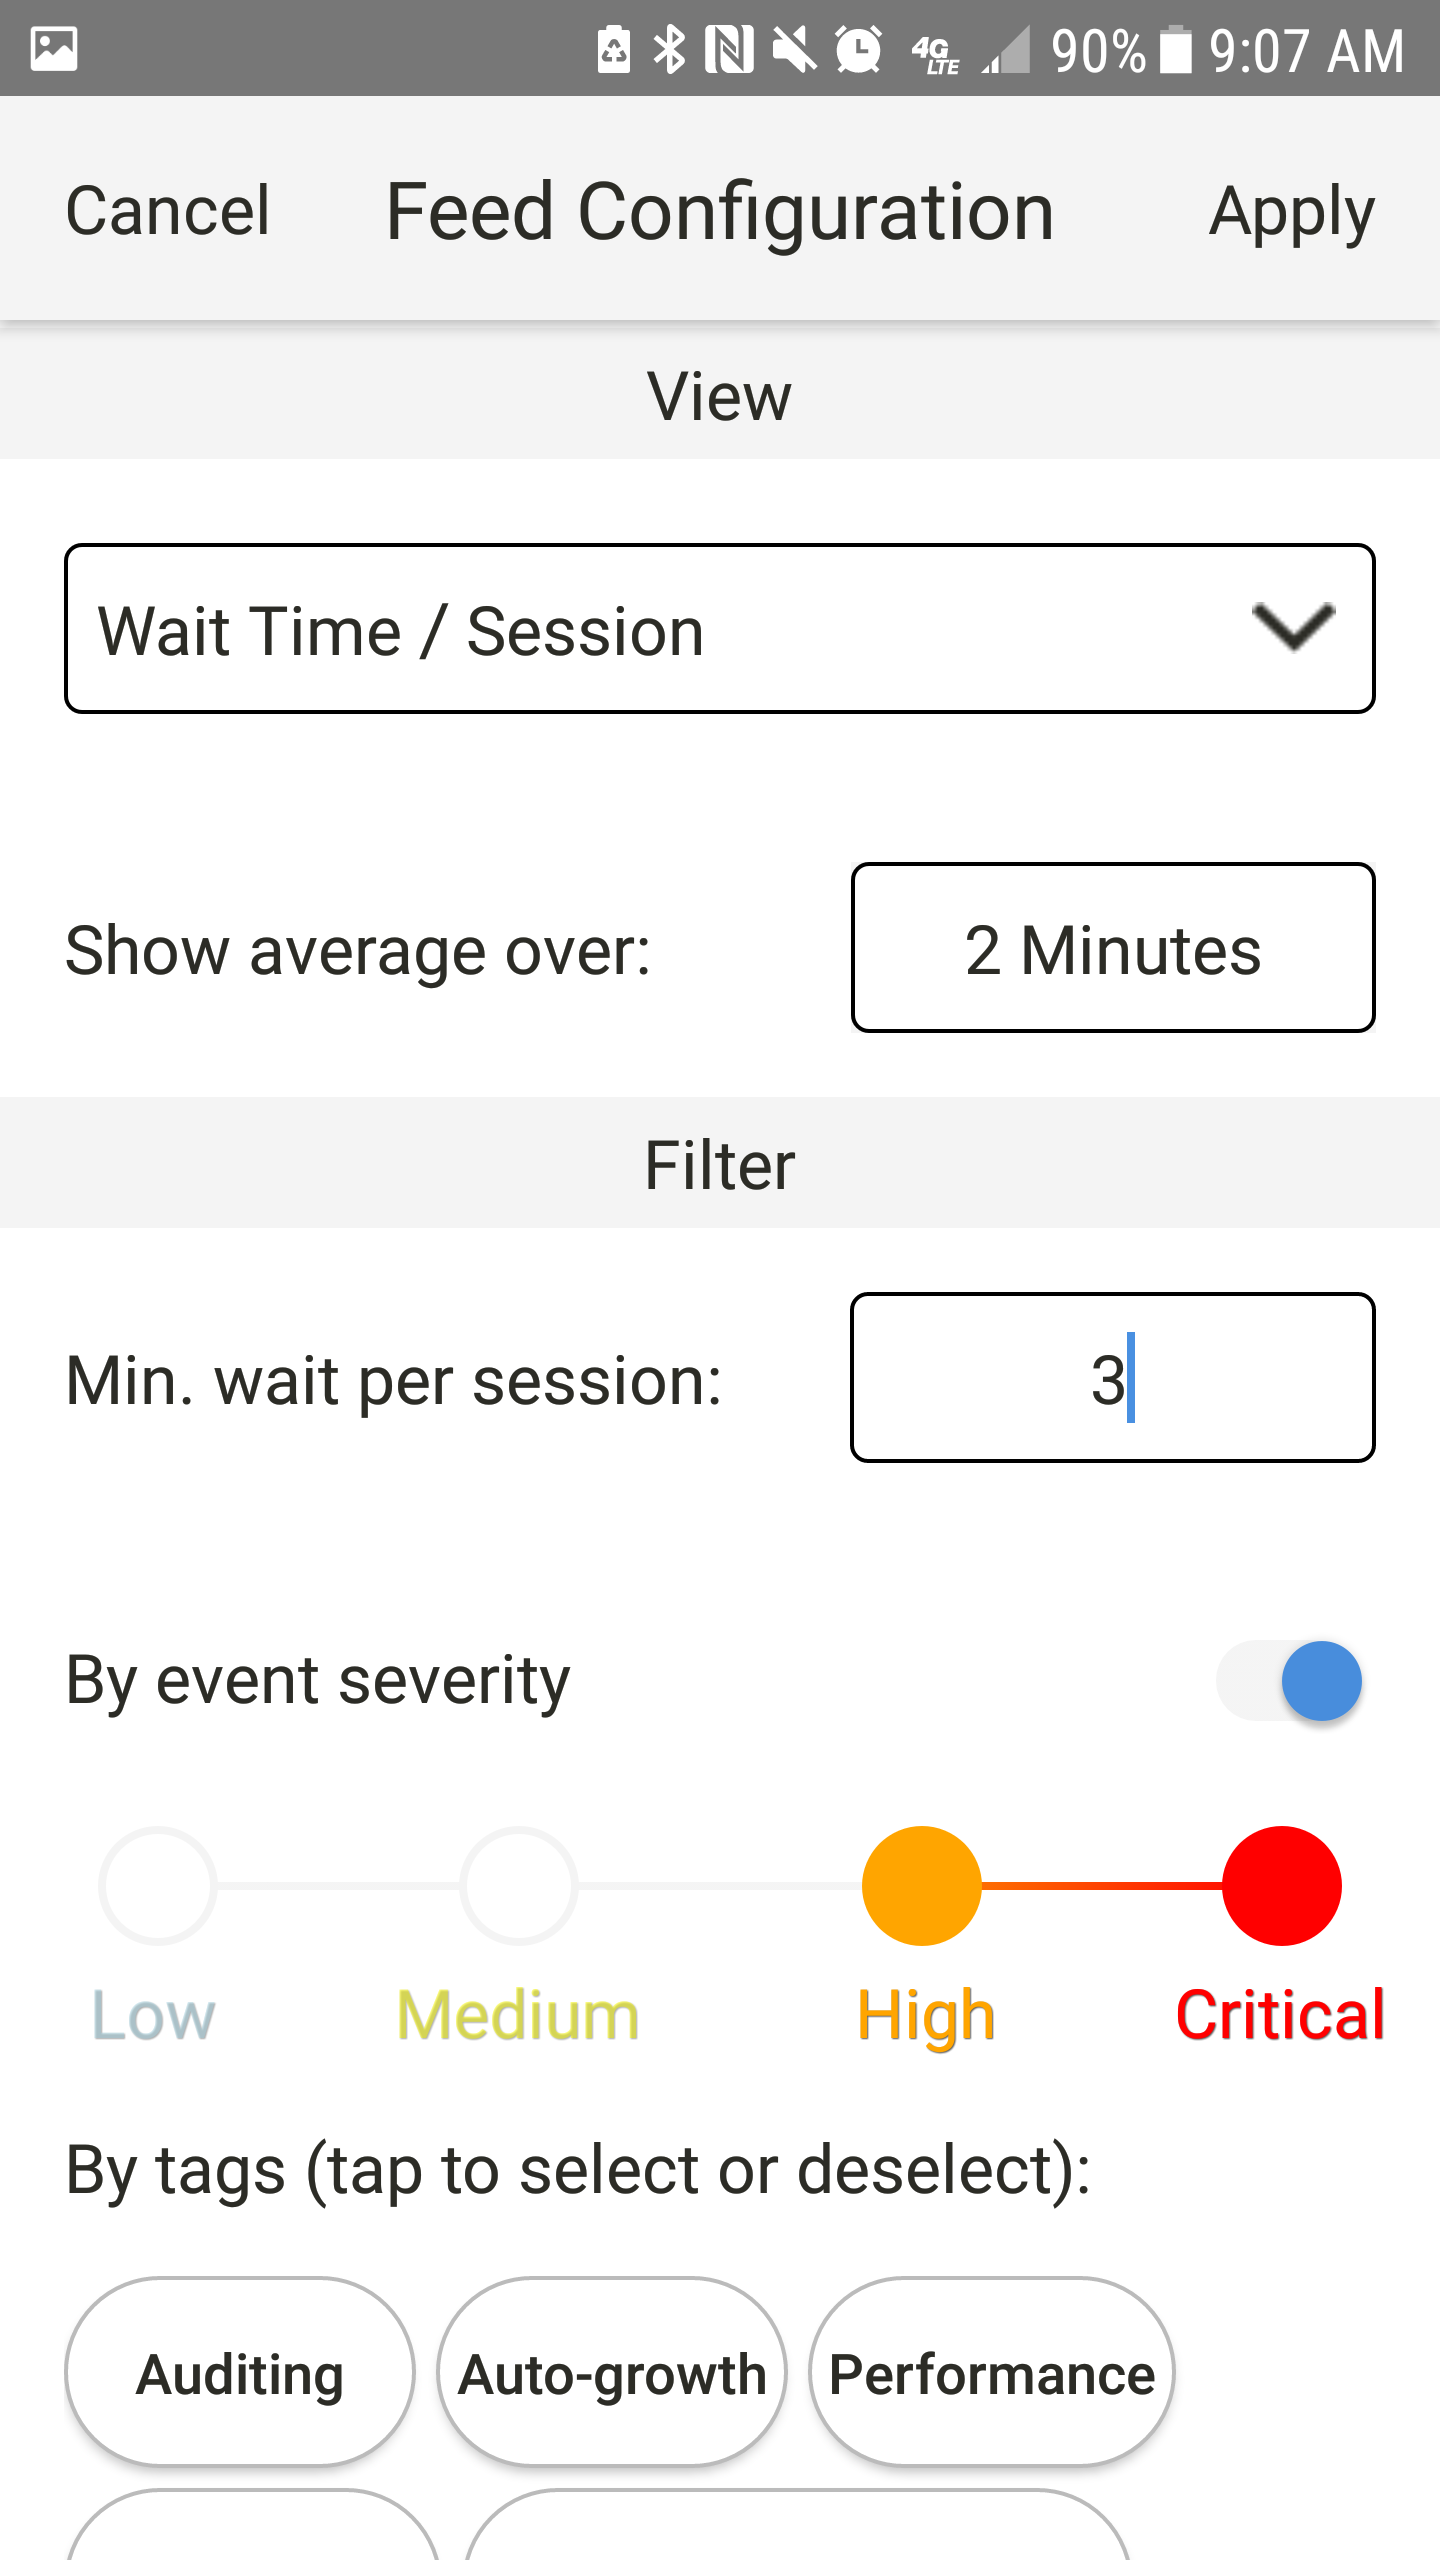 SentryOne App for Android view by Wait Time/Session